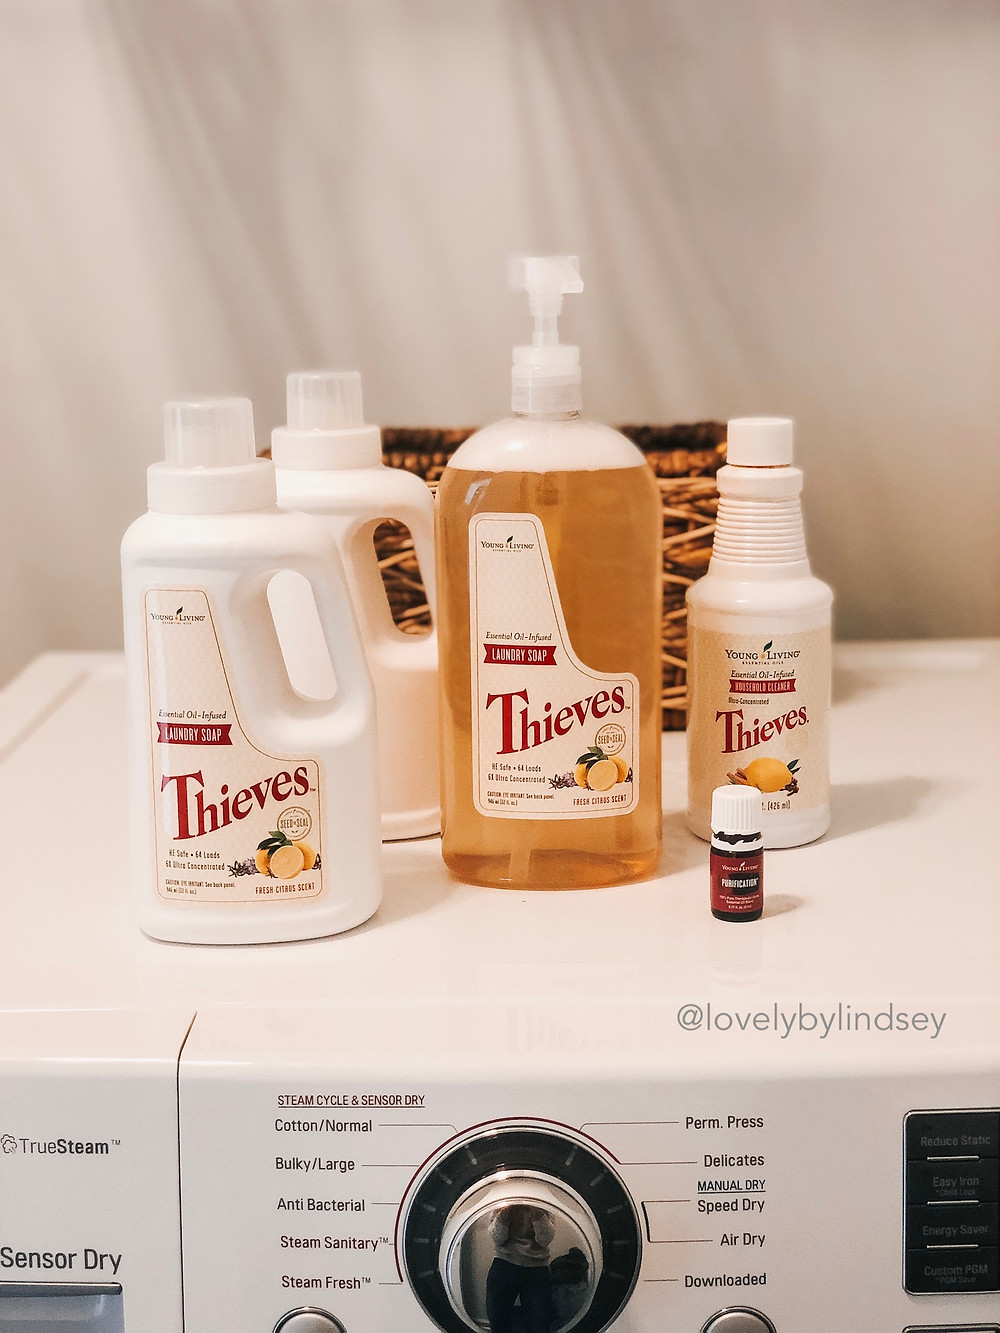 Essential oil HACK for Thieves Laundry Soap. One step closer to chemical-free living with essential oil infused laundry detergent. Learn more at: www.essentiallylindseyrae.com